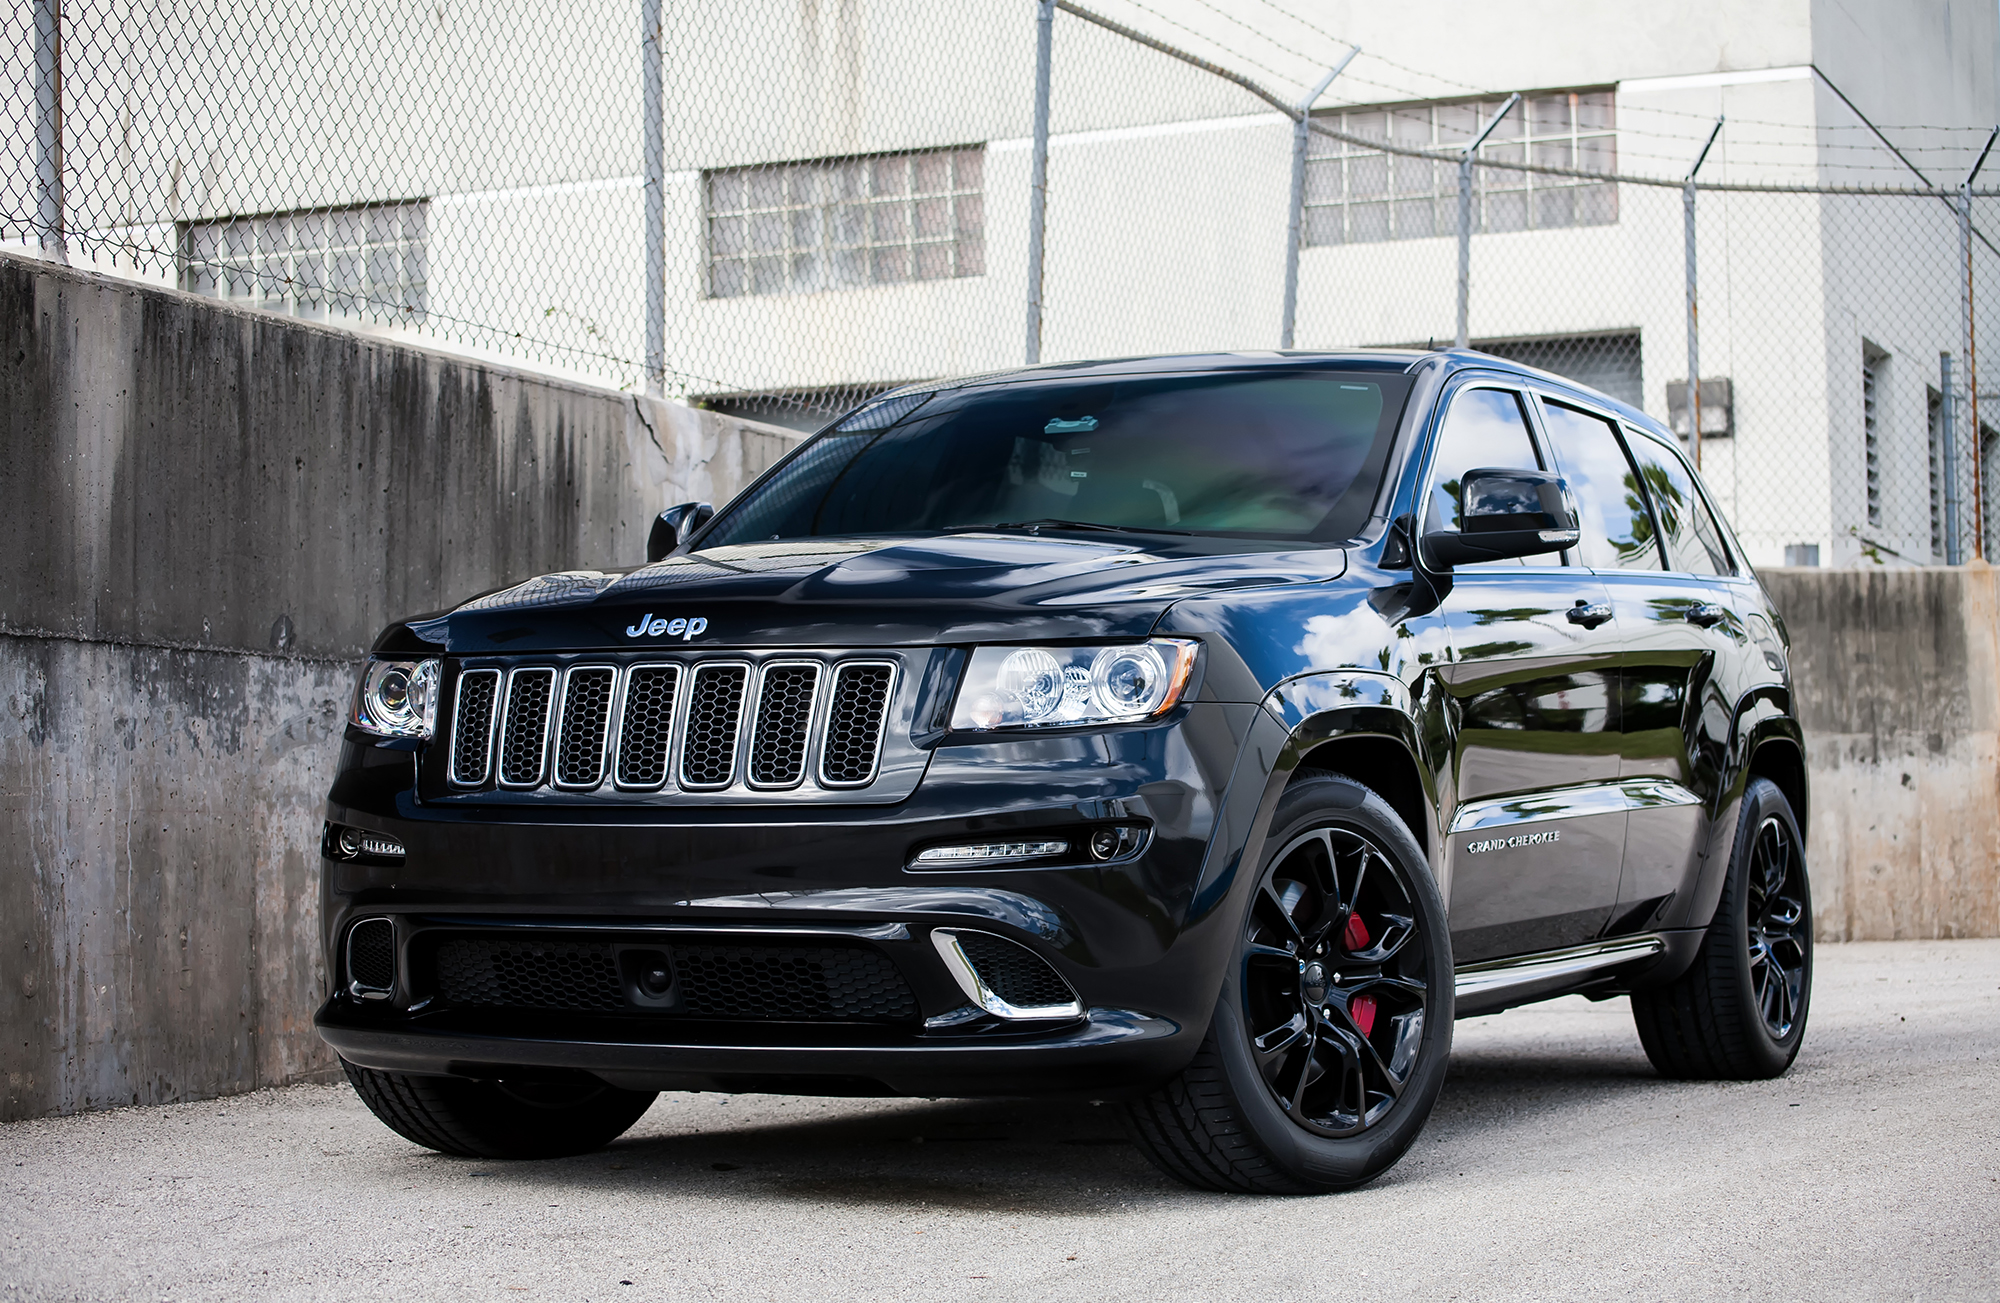 2019 Jeep Grand Cherokee SRT8 photo - 2